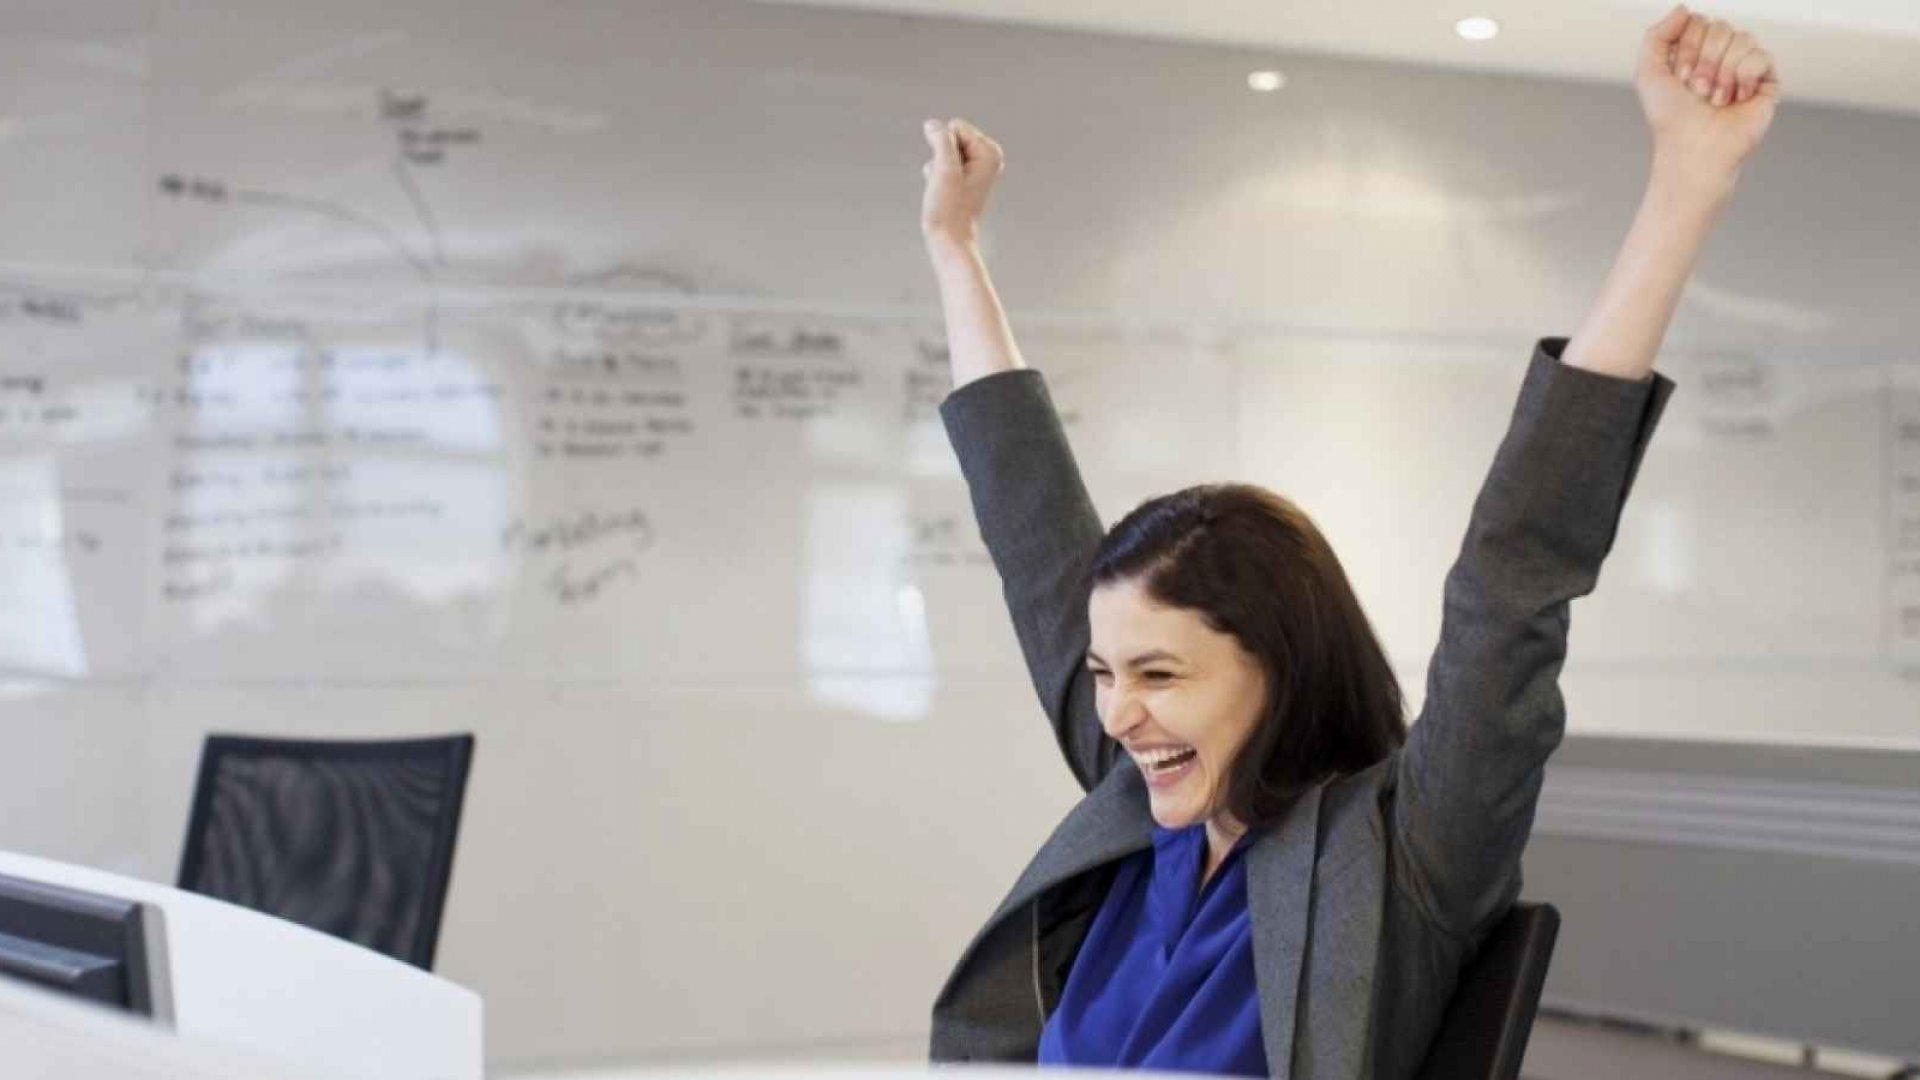 9 Secret Things Super Successful People Do That Probably You Don't (Yet)